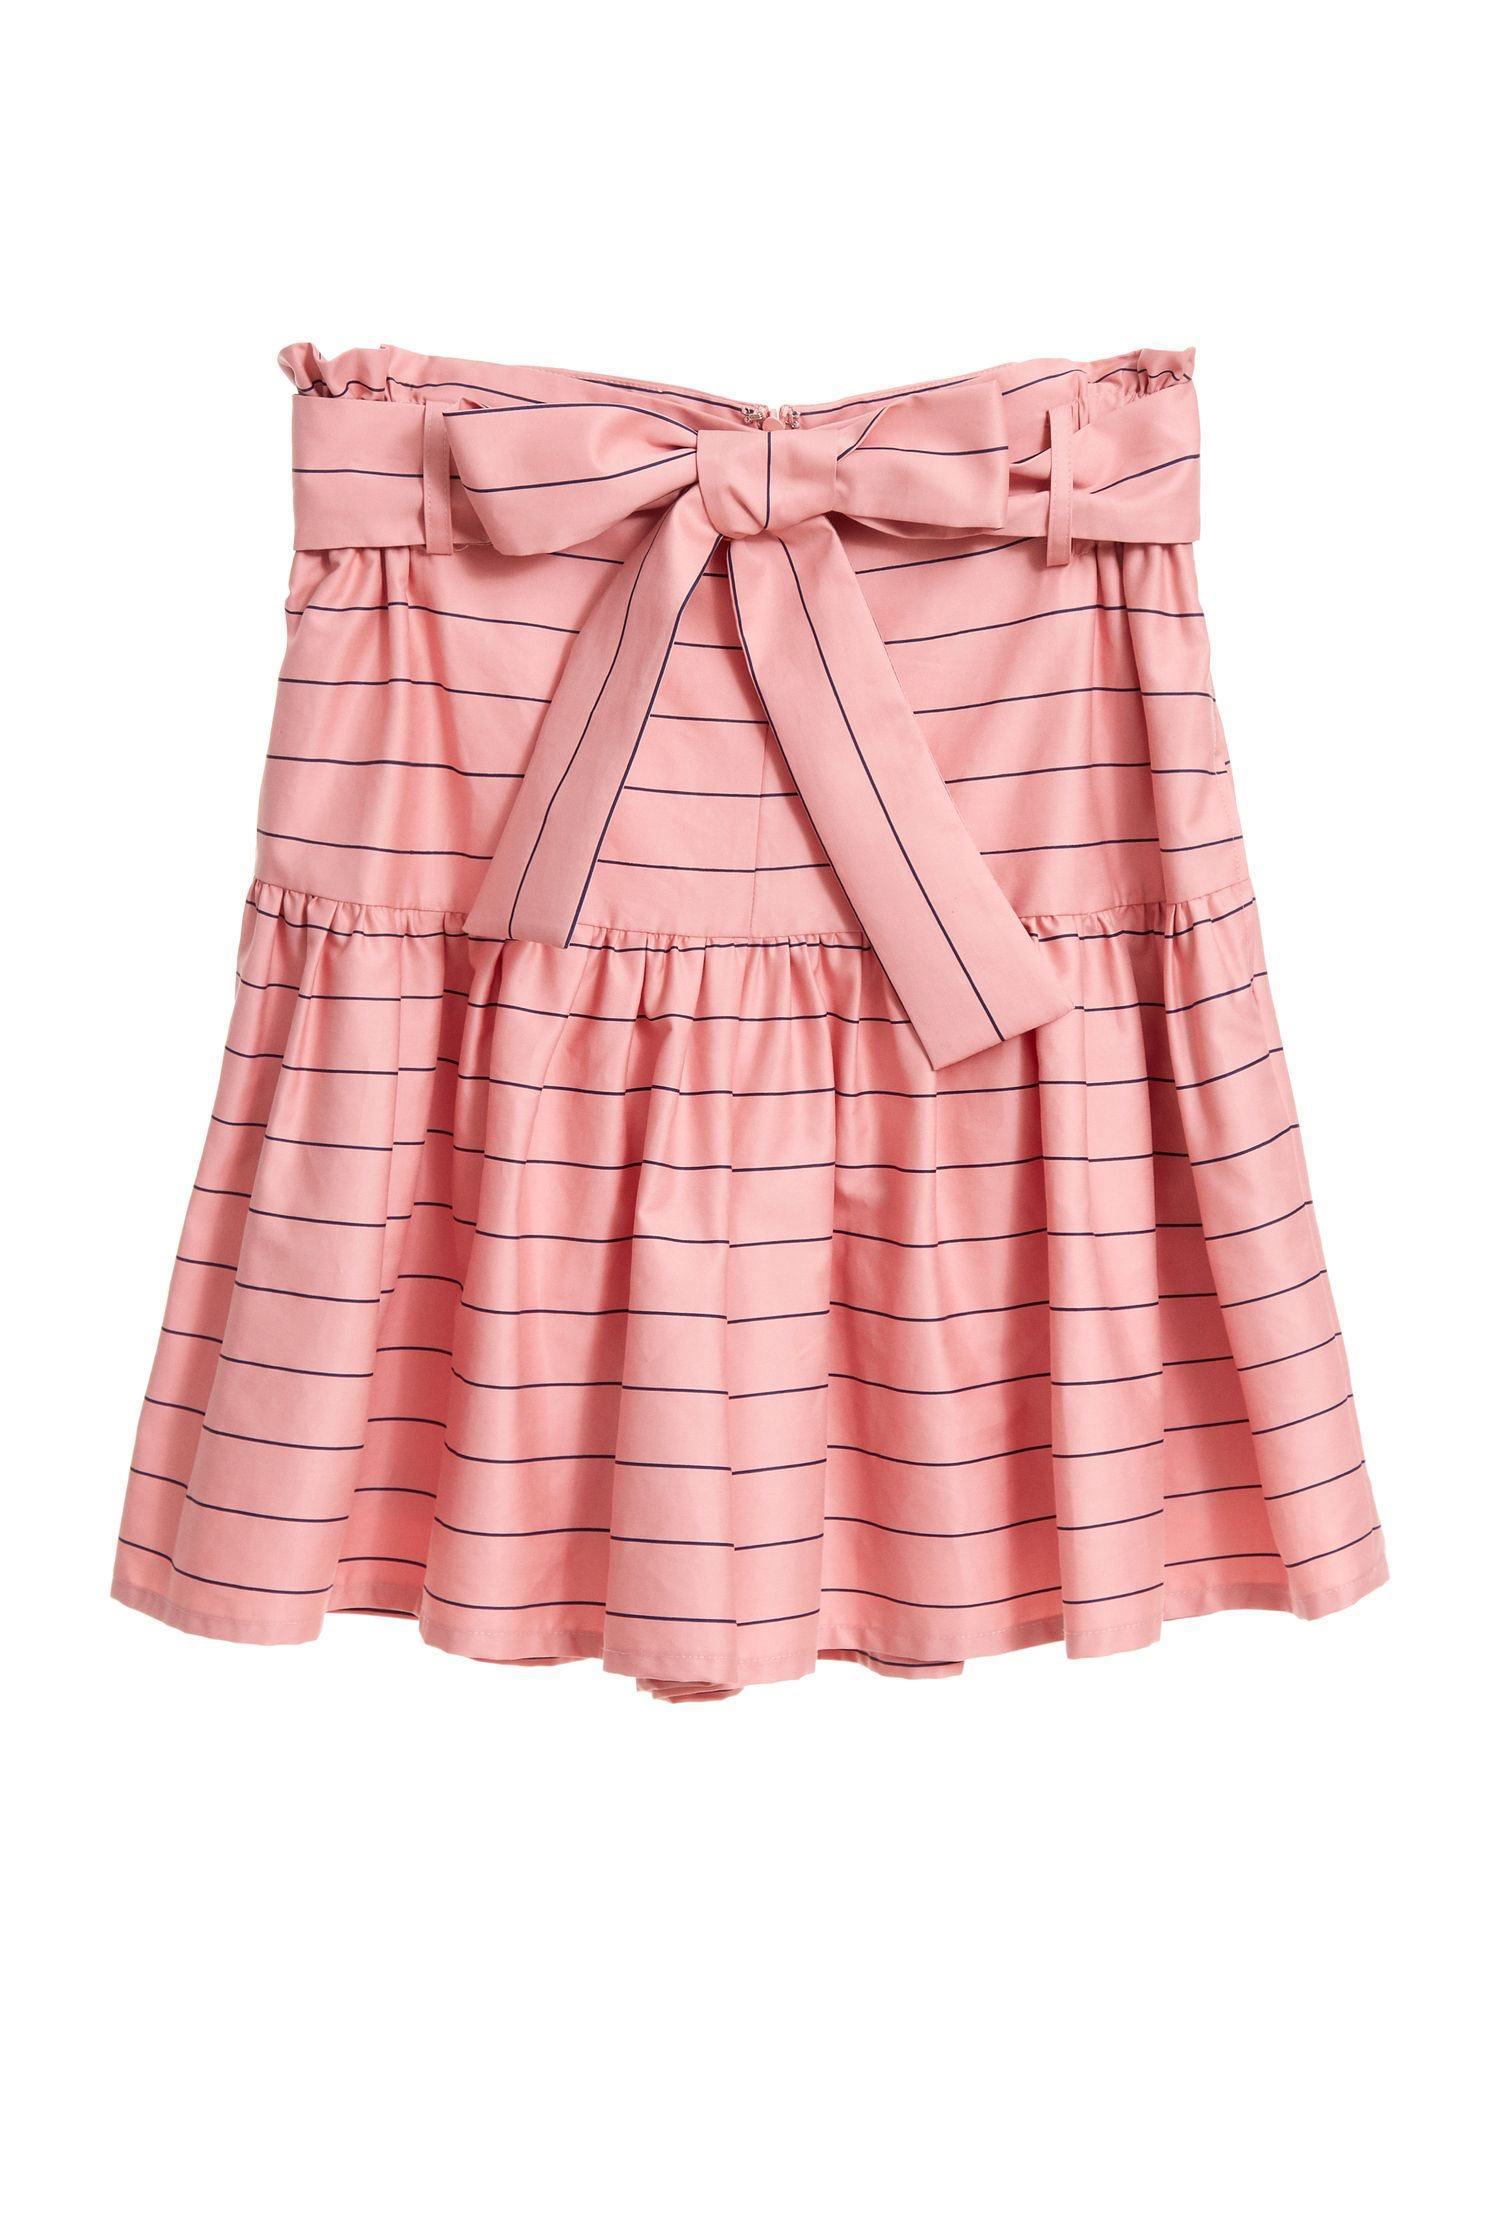 Striped strappy shorts skirt,shorts,i-select,culottes,girlfriendsspringtour